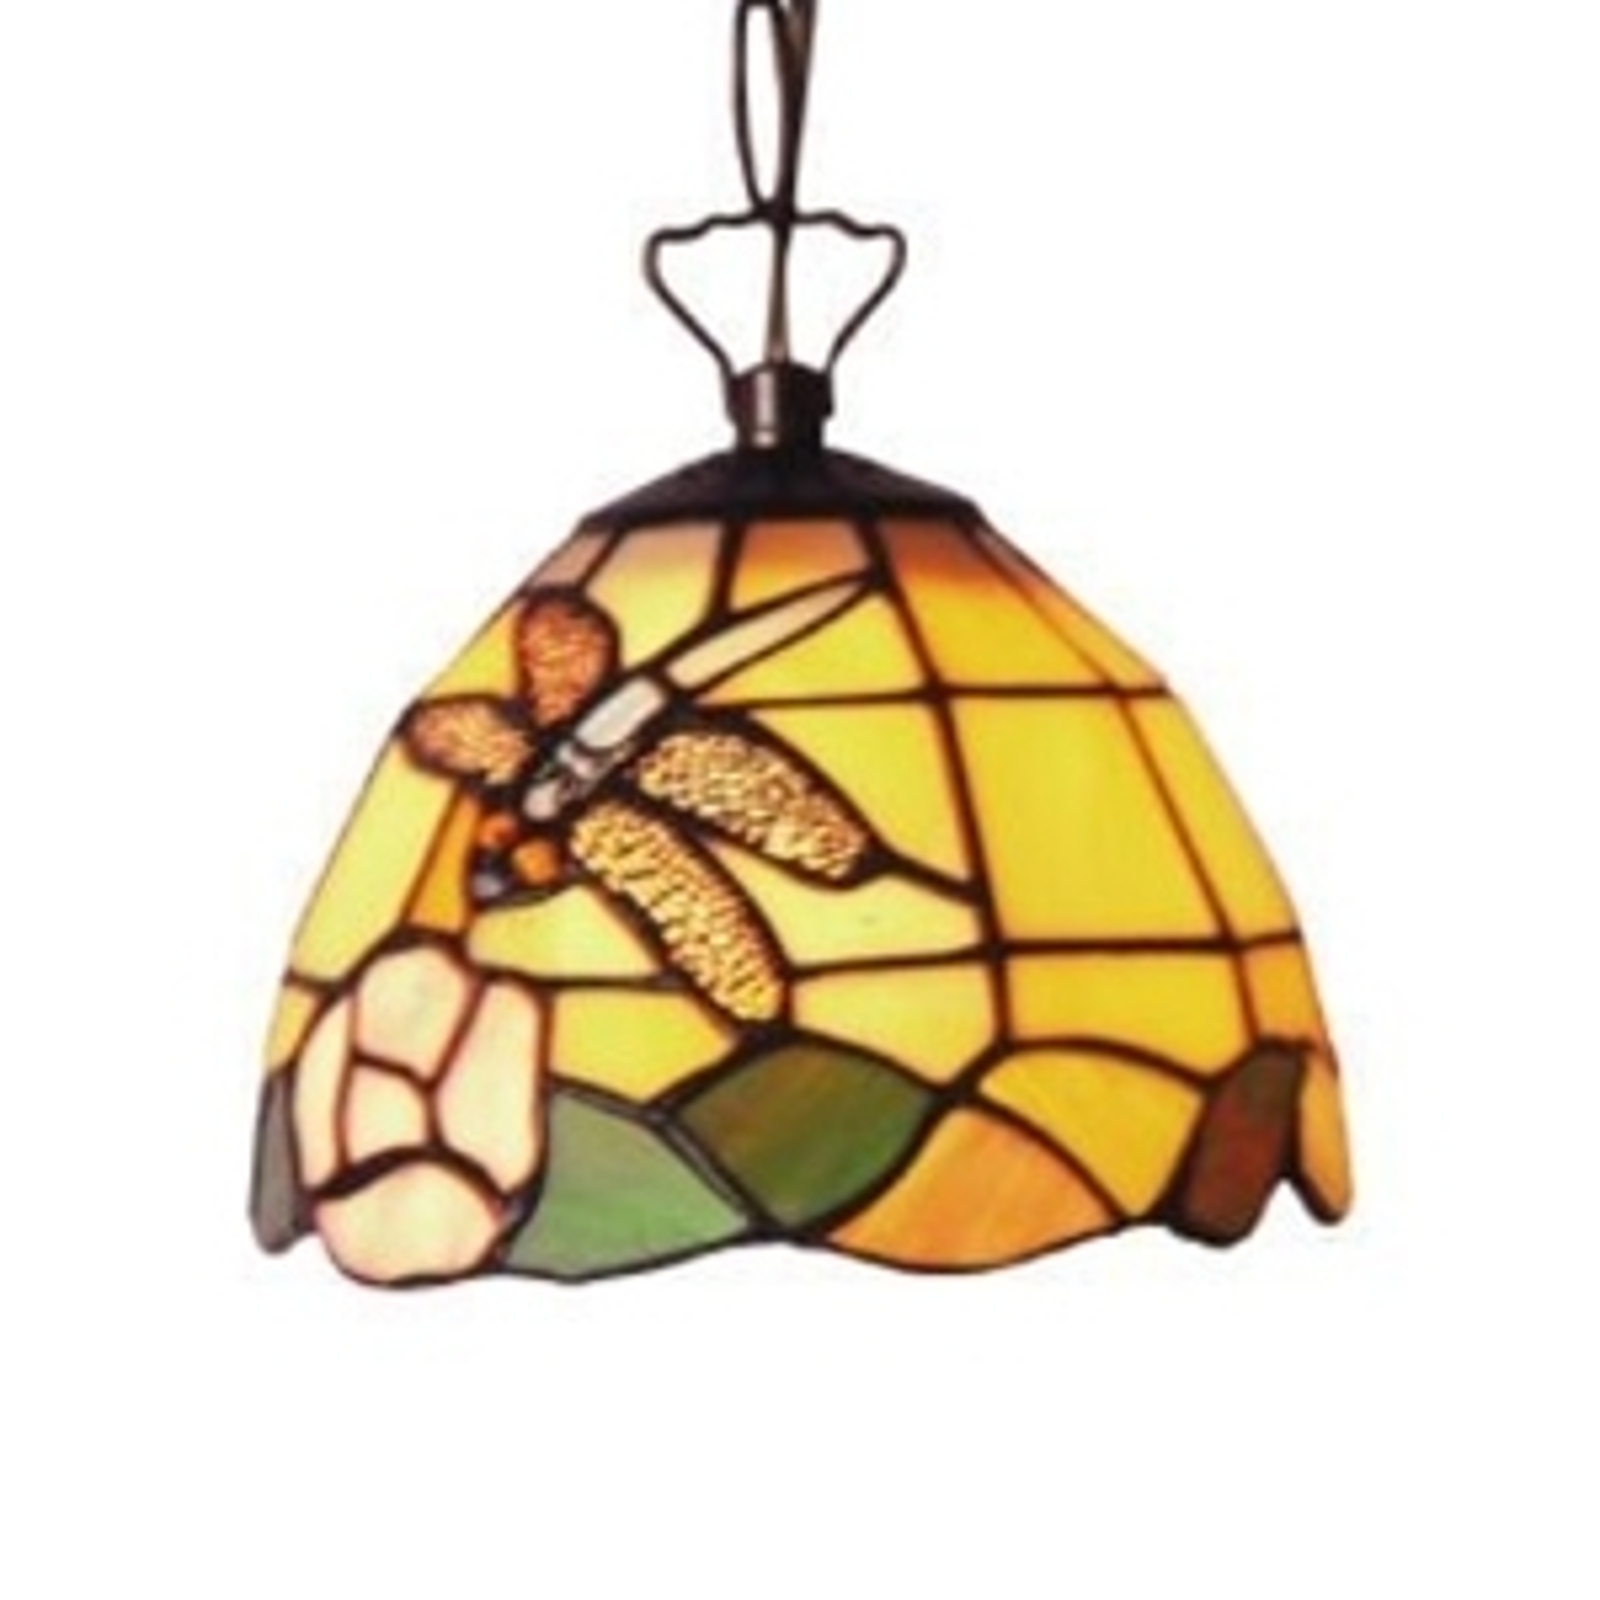 Decorative Tiffany-style hanging light LIBELLE_1032066_1